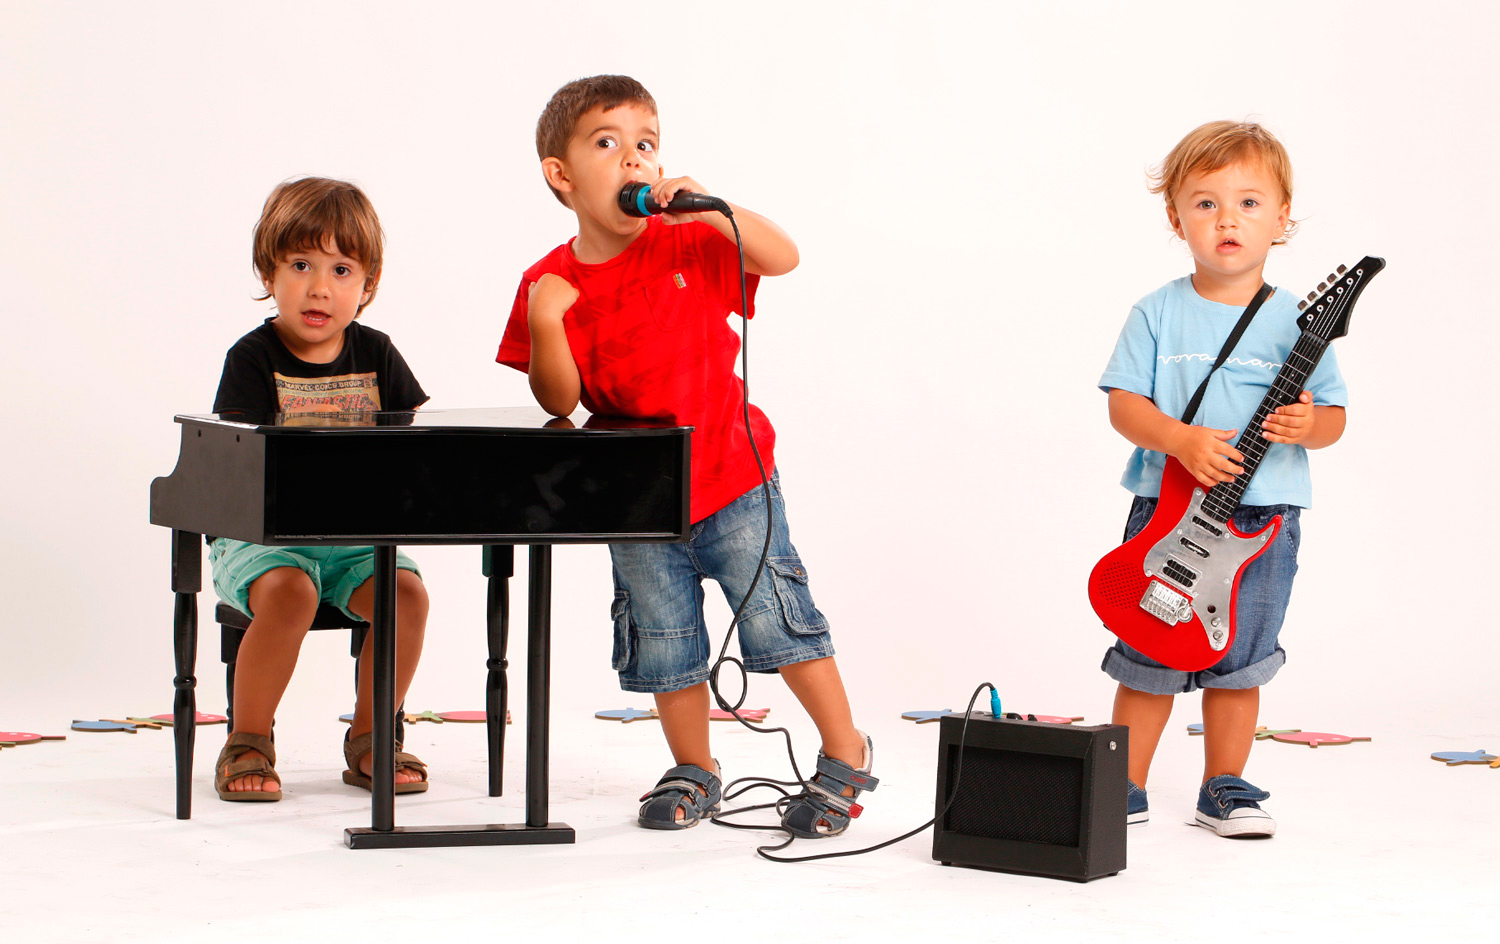 Are music video games an alternative to learning an instrument?